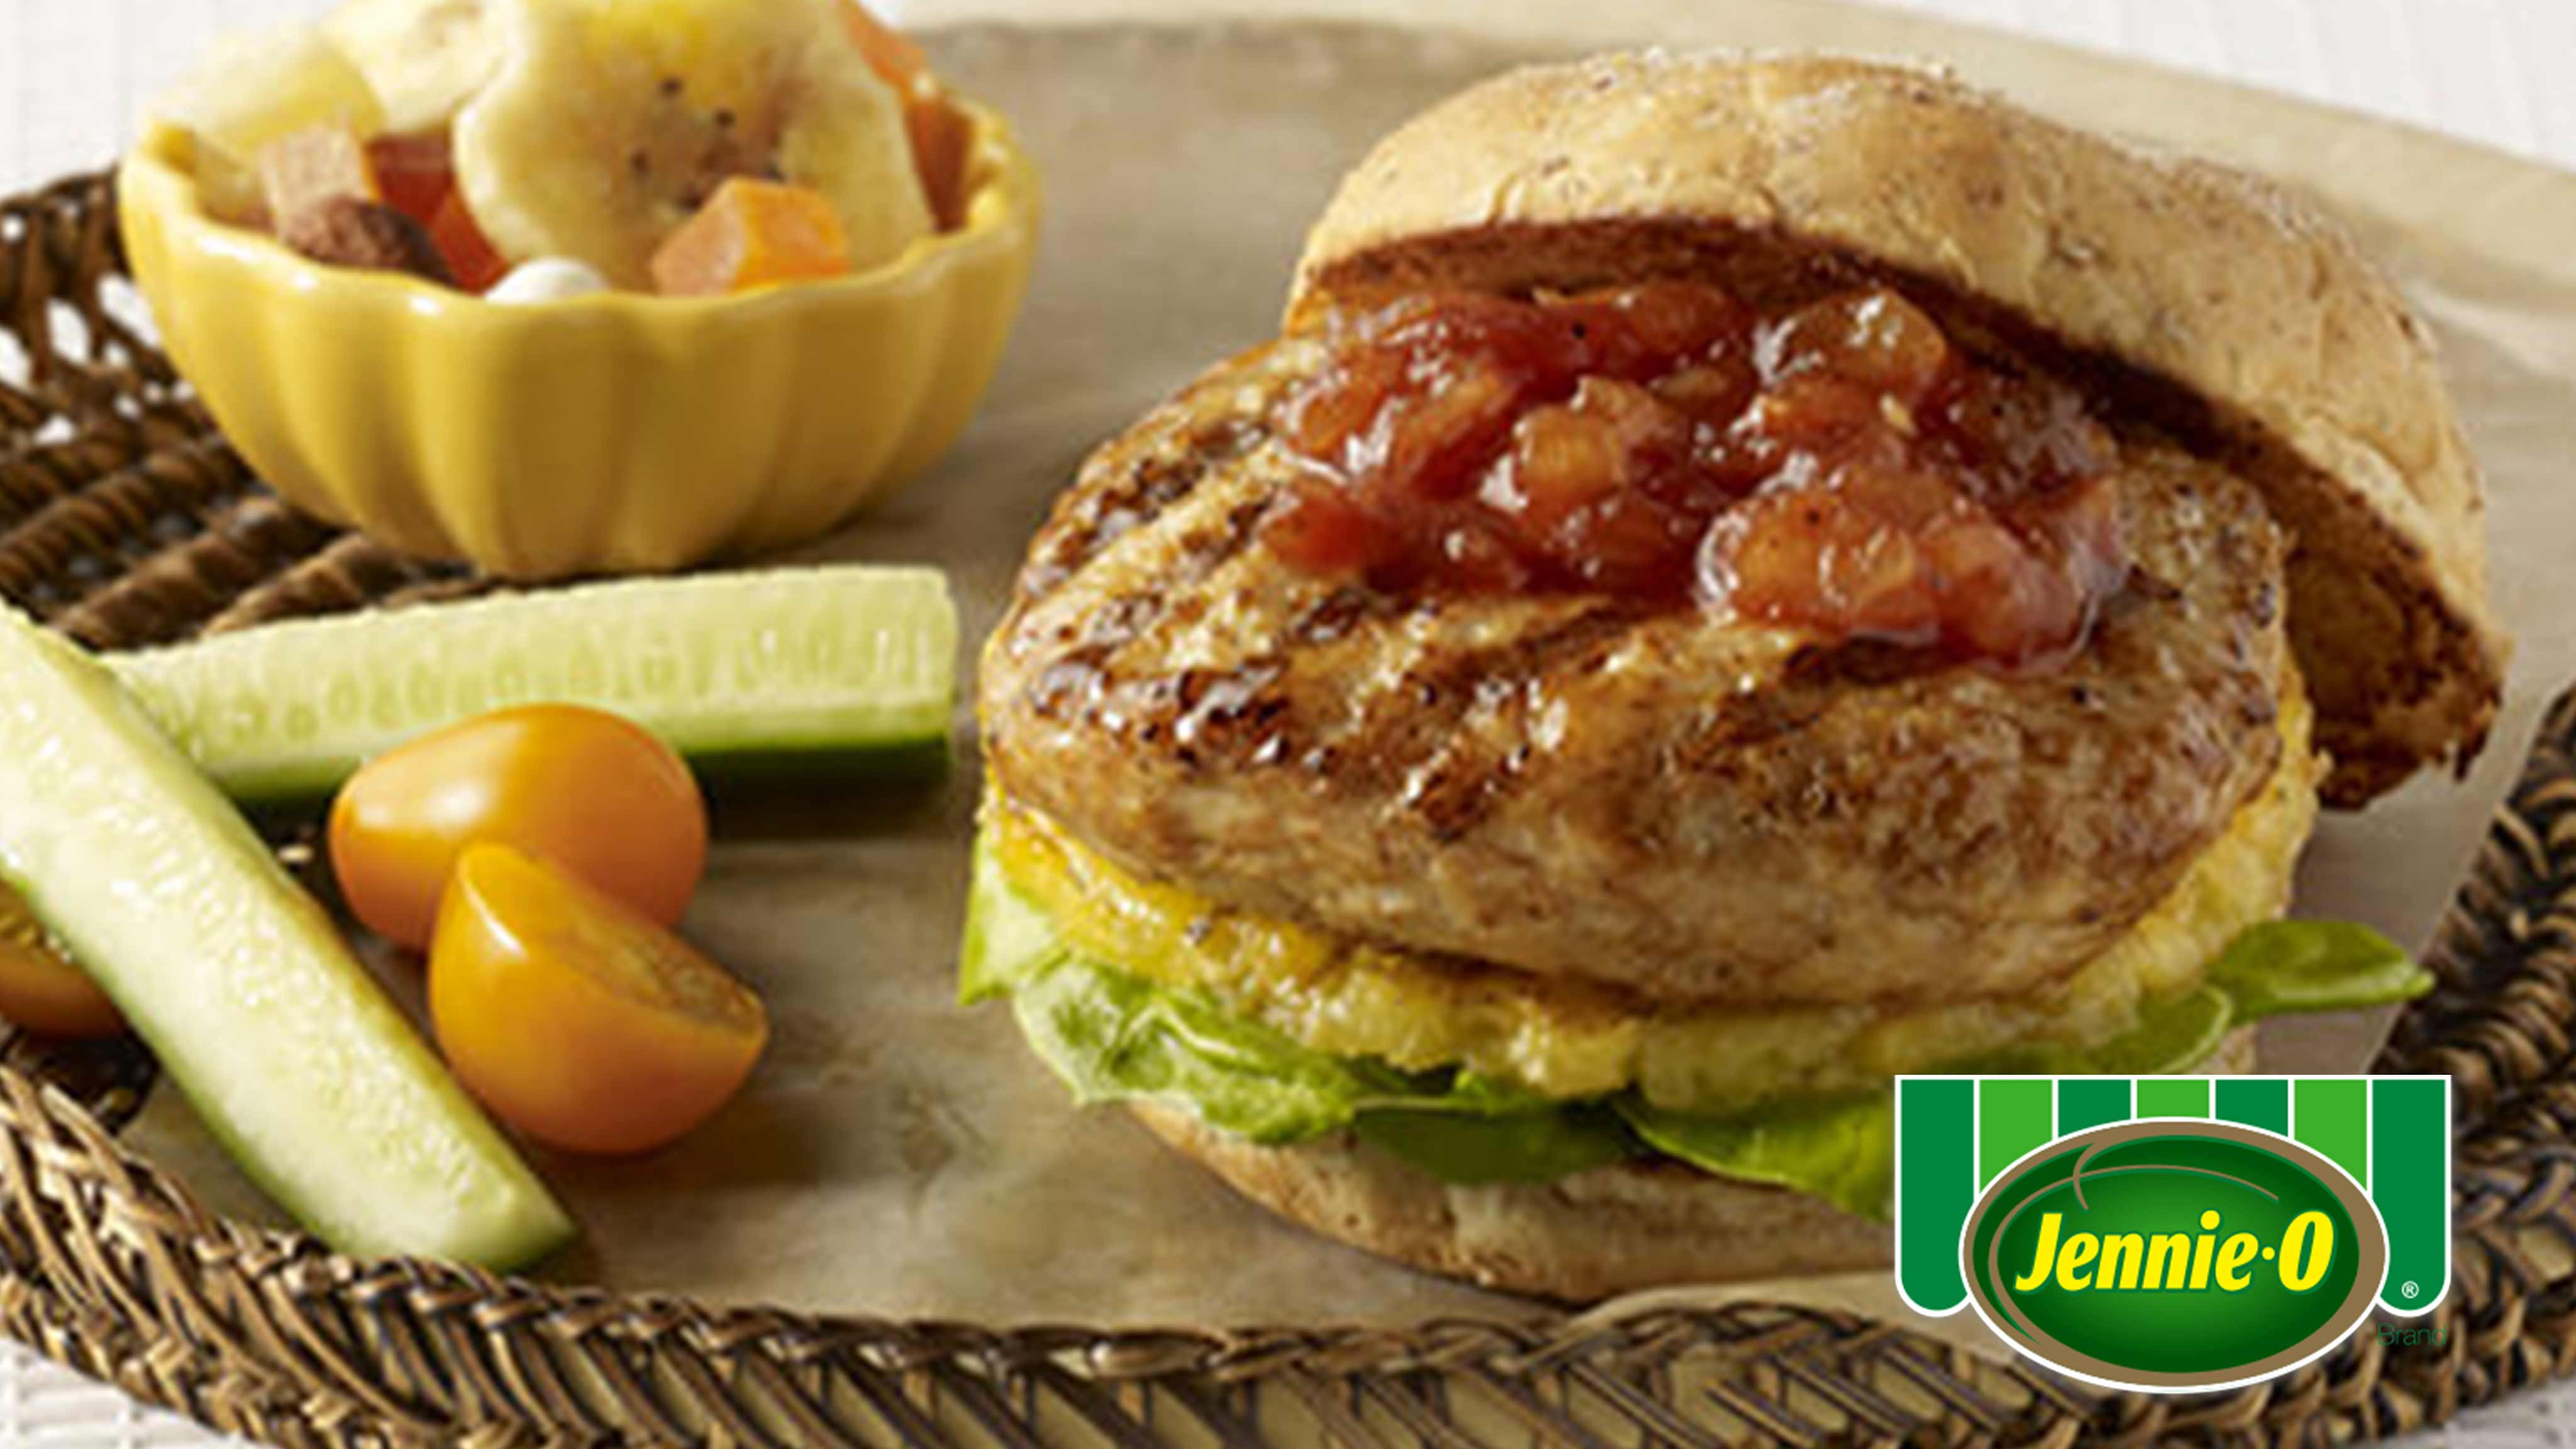 Meatloaf burger sub - Grill Hunters